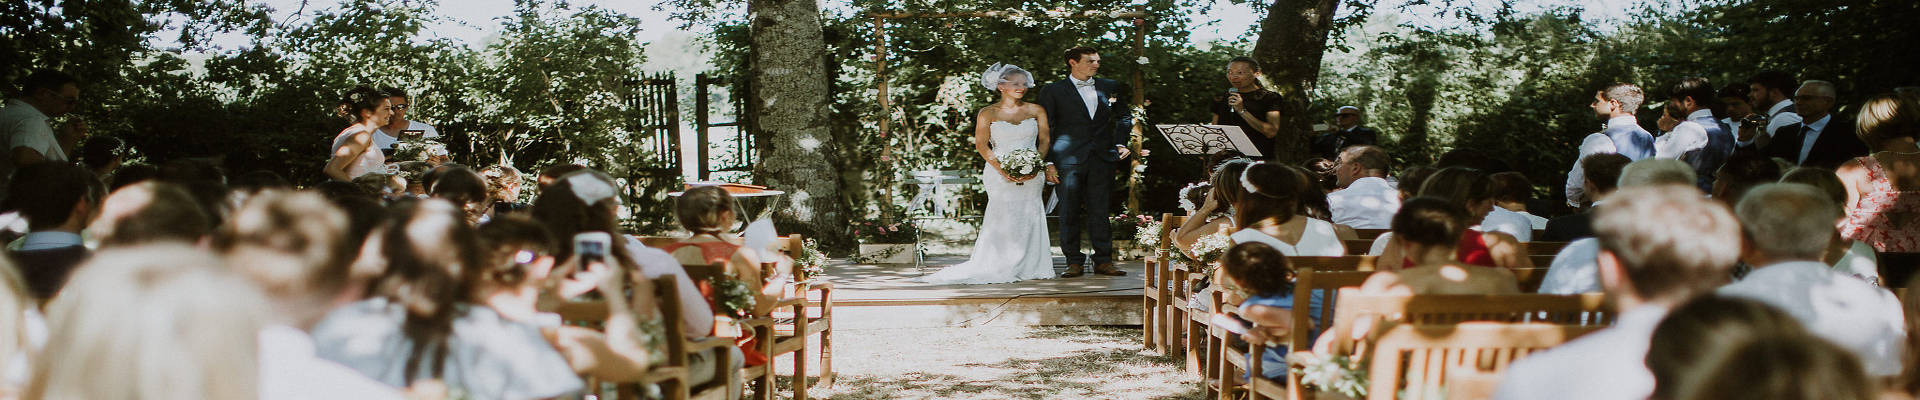 wedding celebrant in france - wedding ceremony in france - unique ceremonies